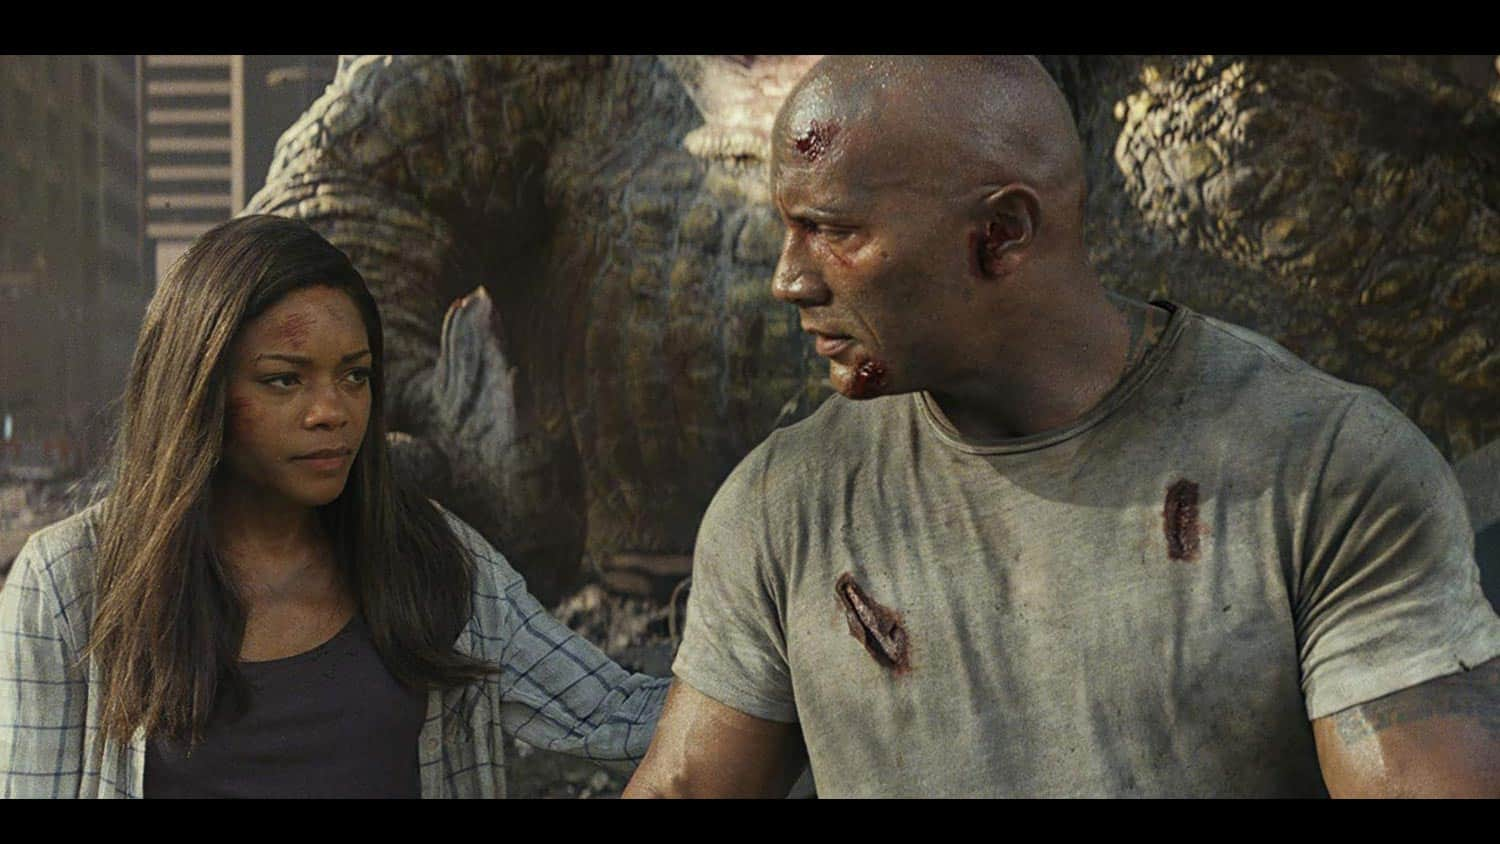 Rampage Blu-Ray Review – The Rock Meets The Gorilla - OC Movie Reviews - Movie Reviews, Movie News, Documentary Reviews, Short Films, Short Film Reviews, Trailers, Movie Trailers, Interviews, film reviews, film news, hollywood, indie films, documentaries